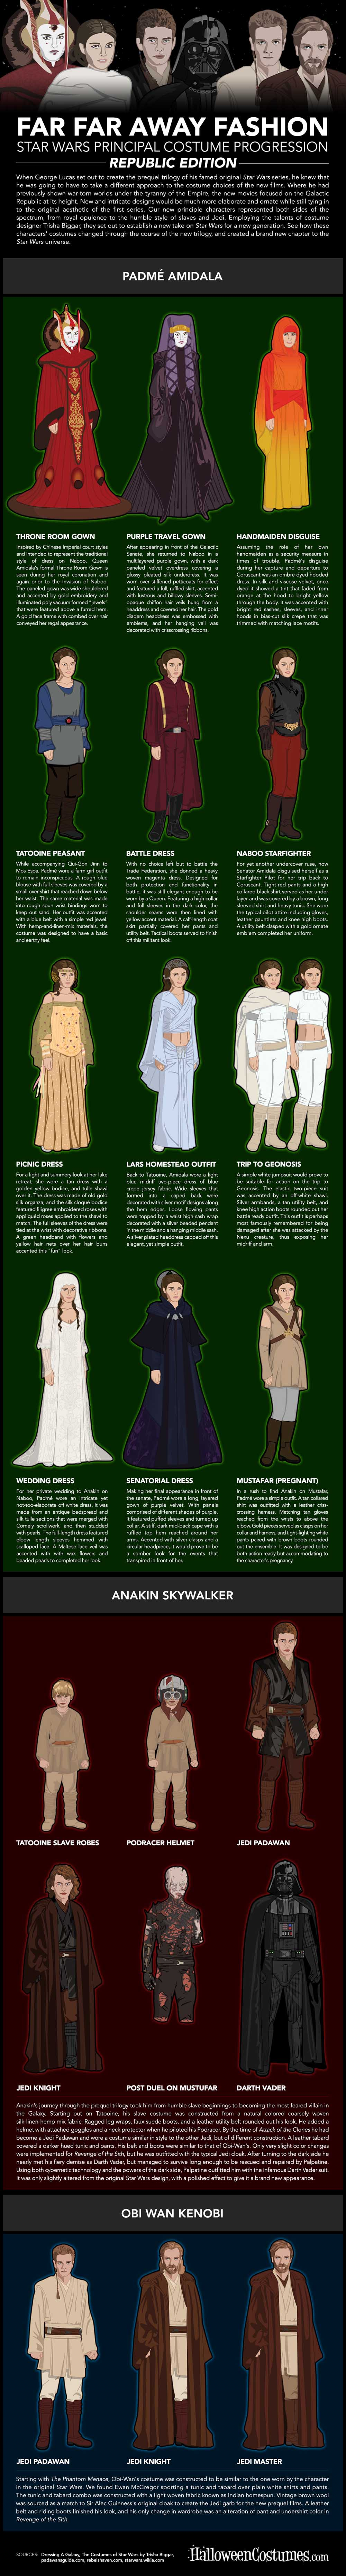 star wars costum evolution of republic infographic